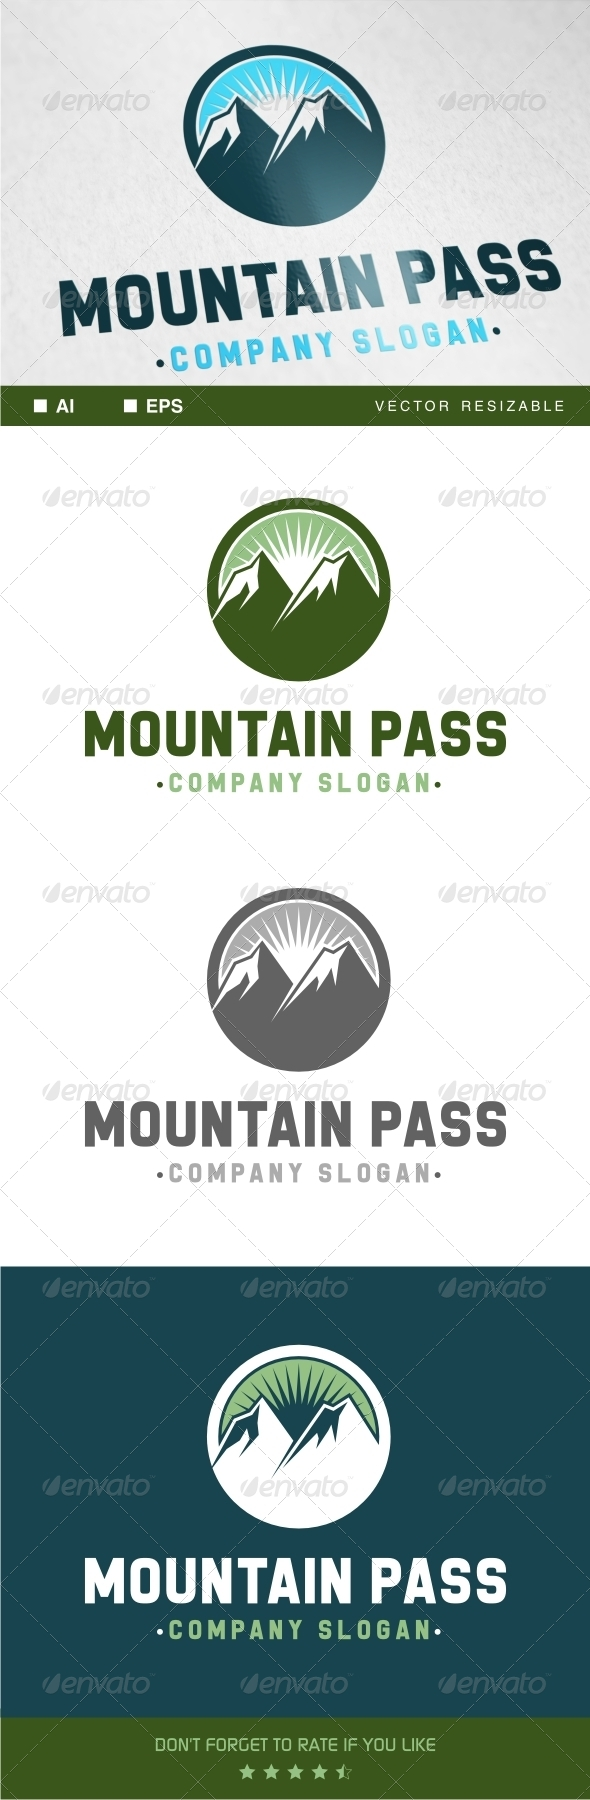 GraphicRiver Mountain Pass Logo 7270951